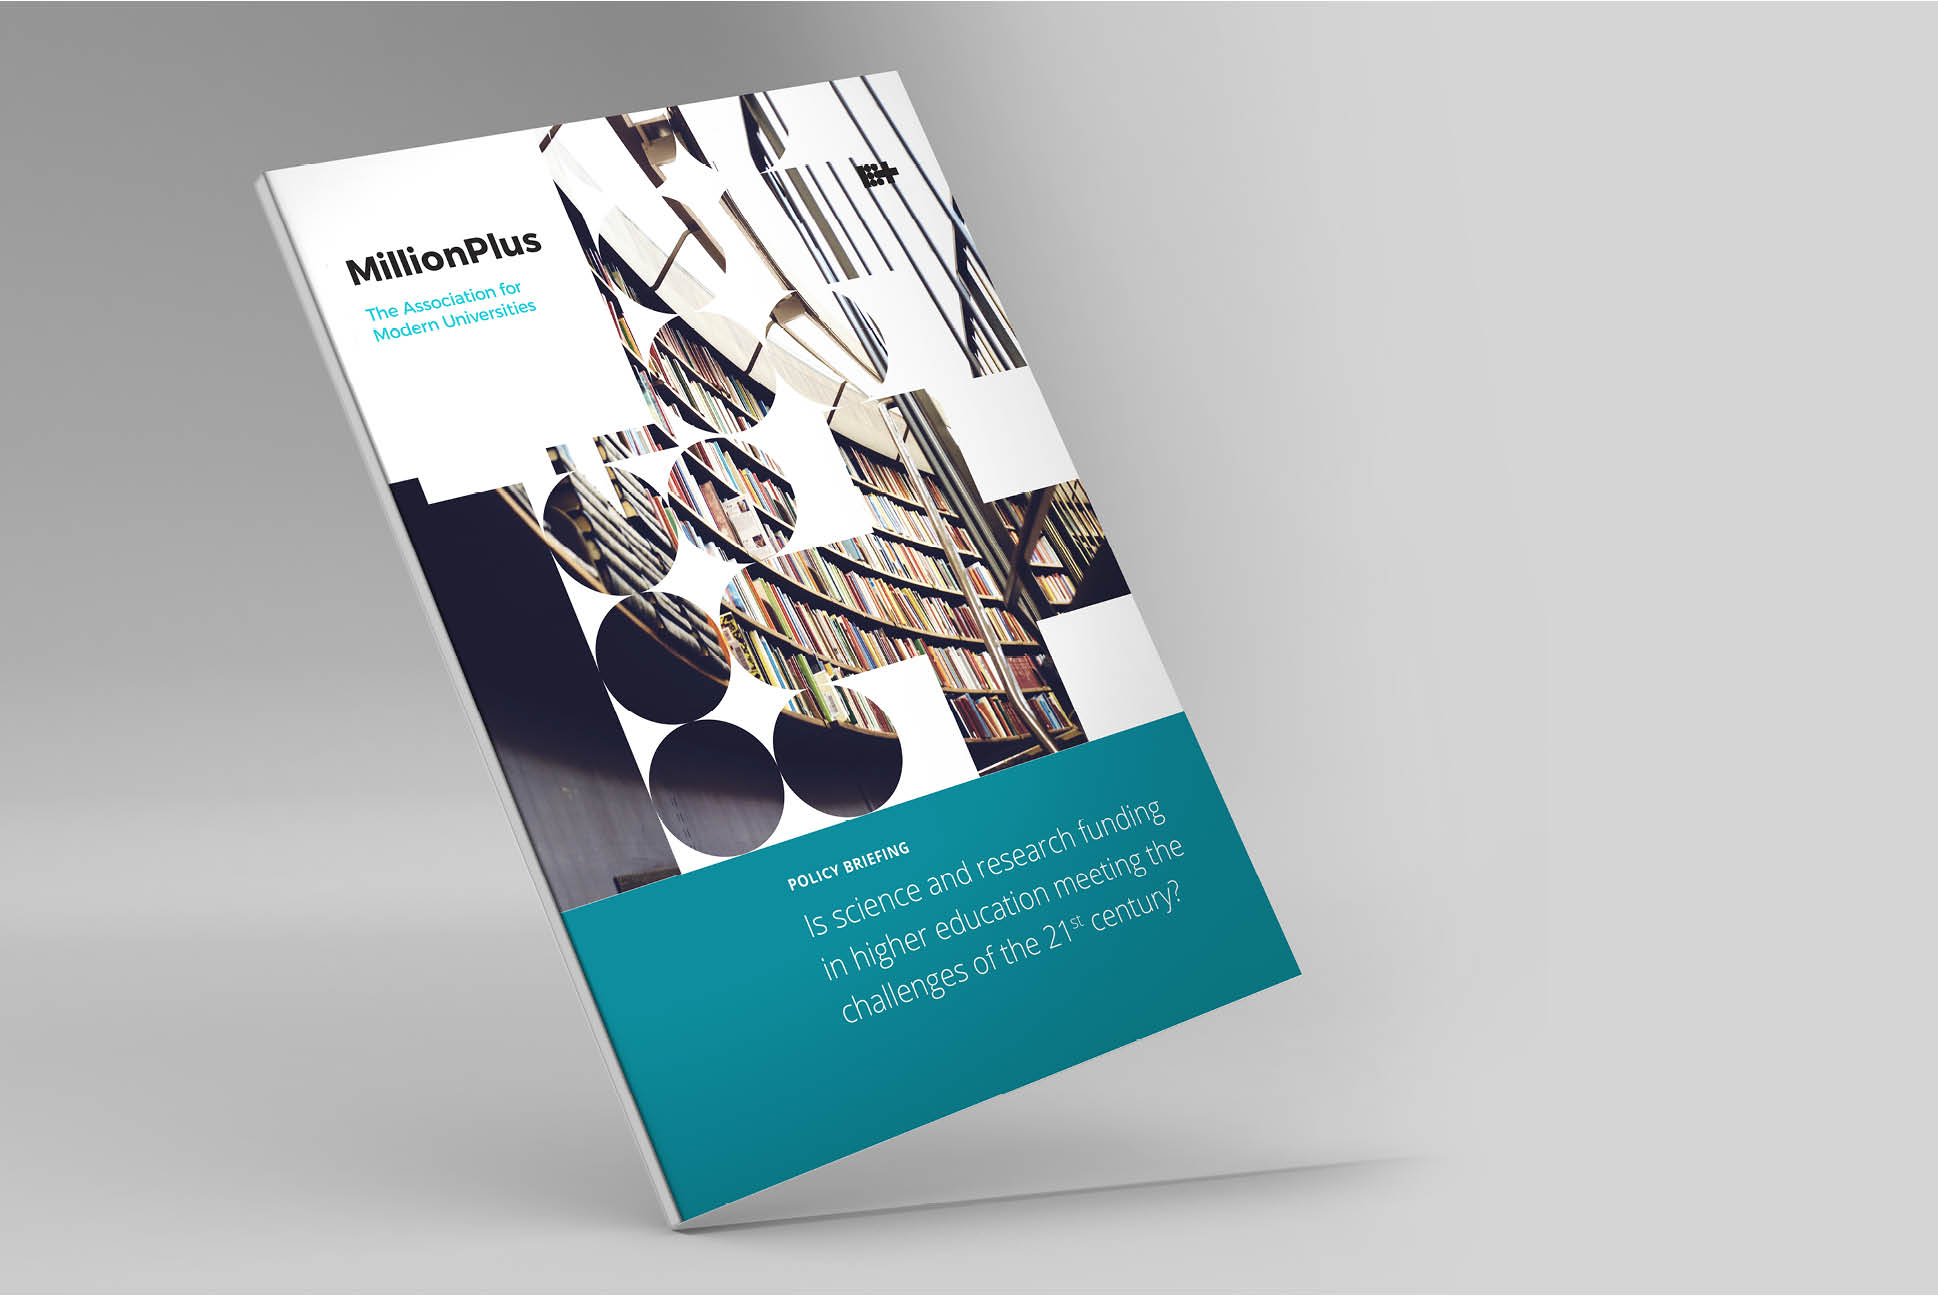 MillionPlus Report | Education Branding London | Independent Marketing London | IM London